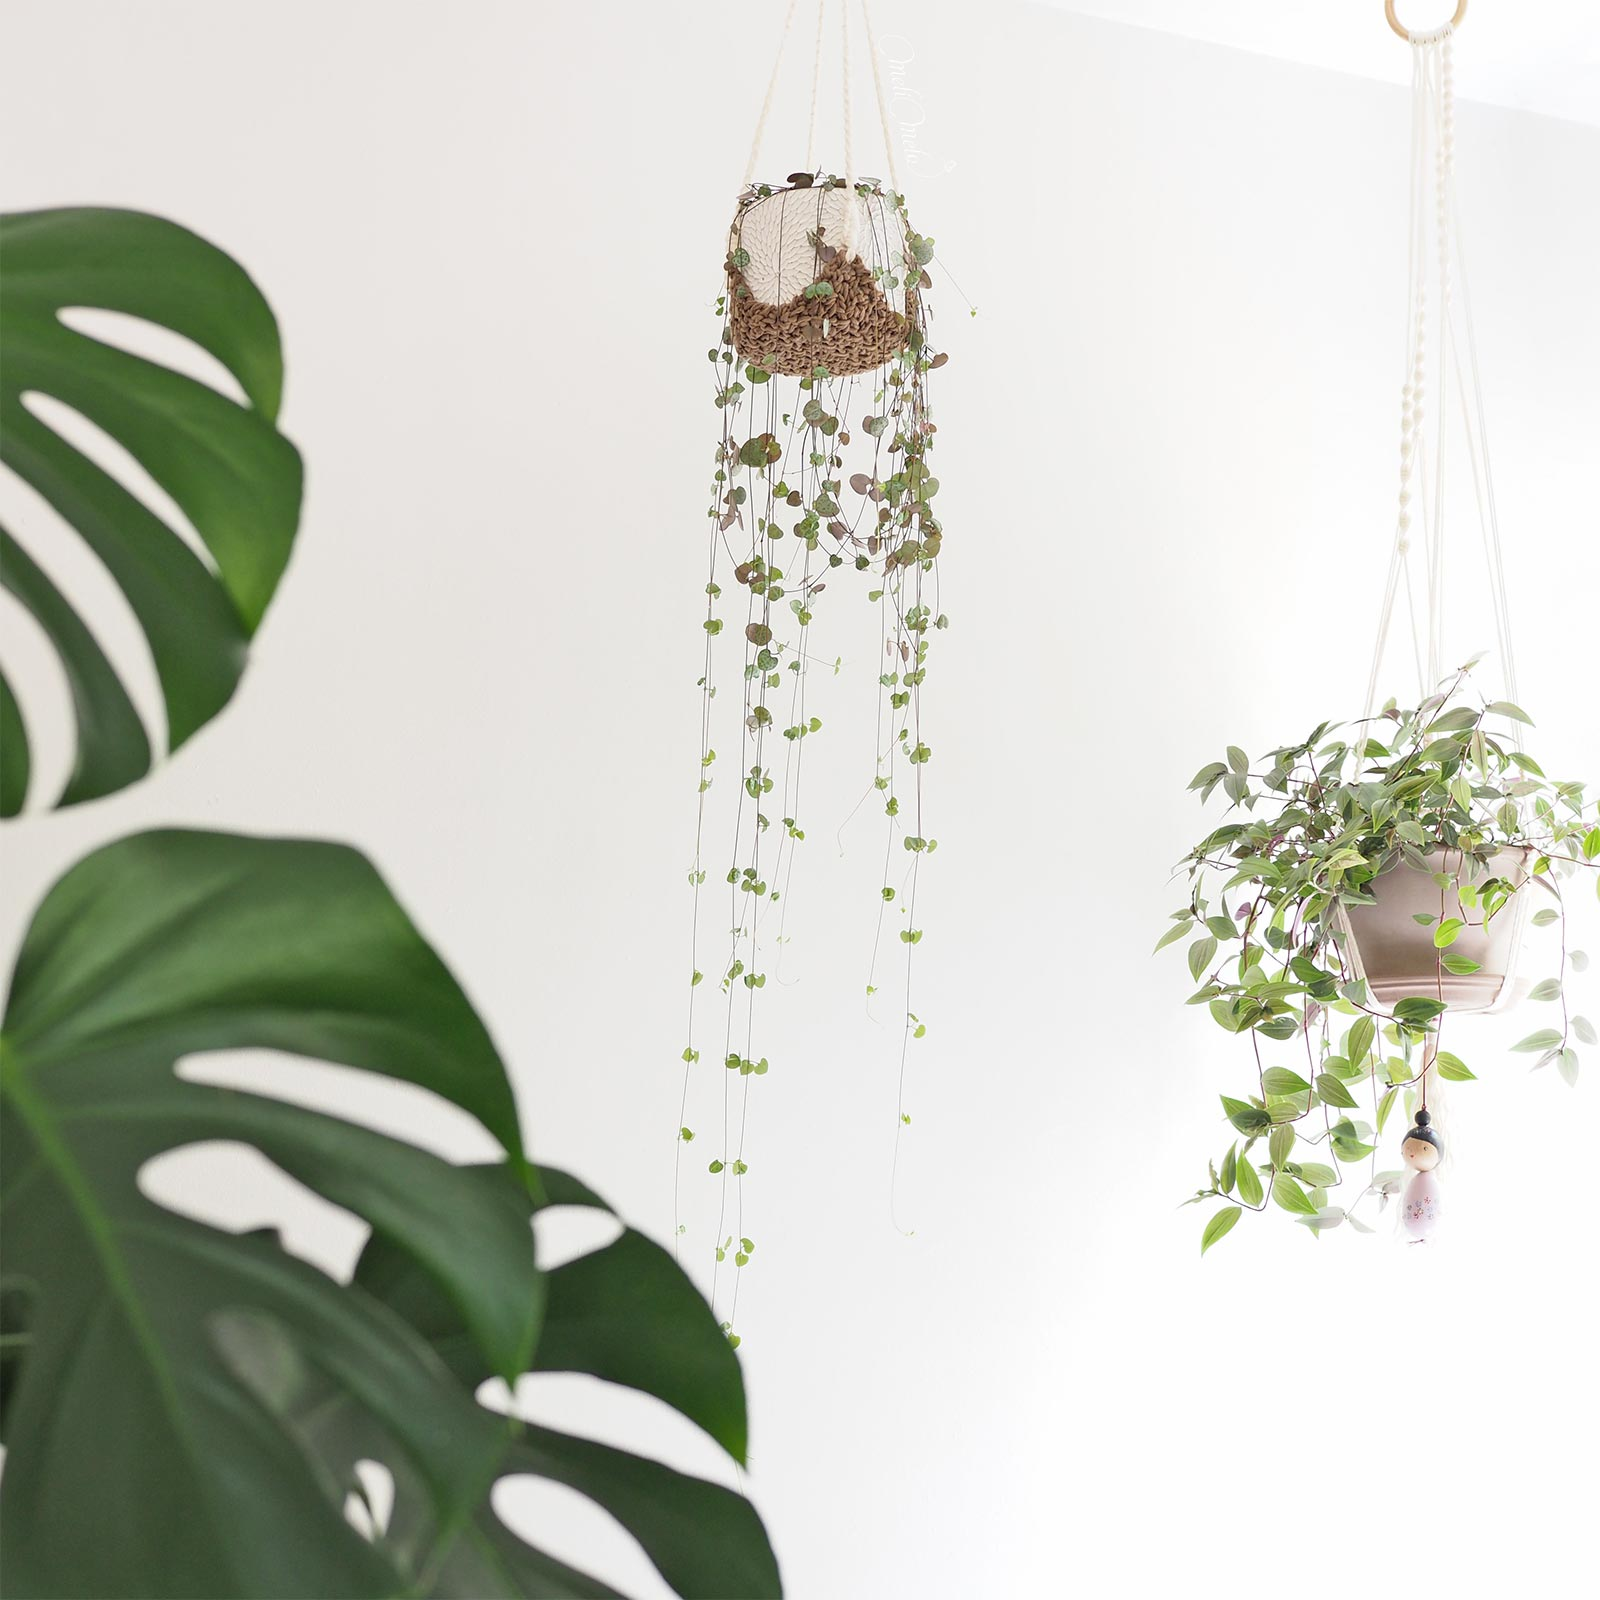 suspensions-ceropegia-woodii-misere-tradescantia-pink-hill-laboutiquedemelimelo